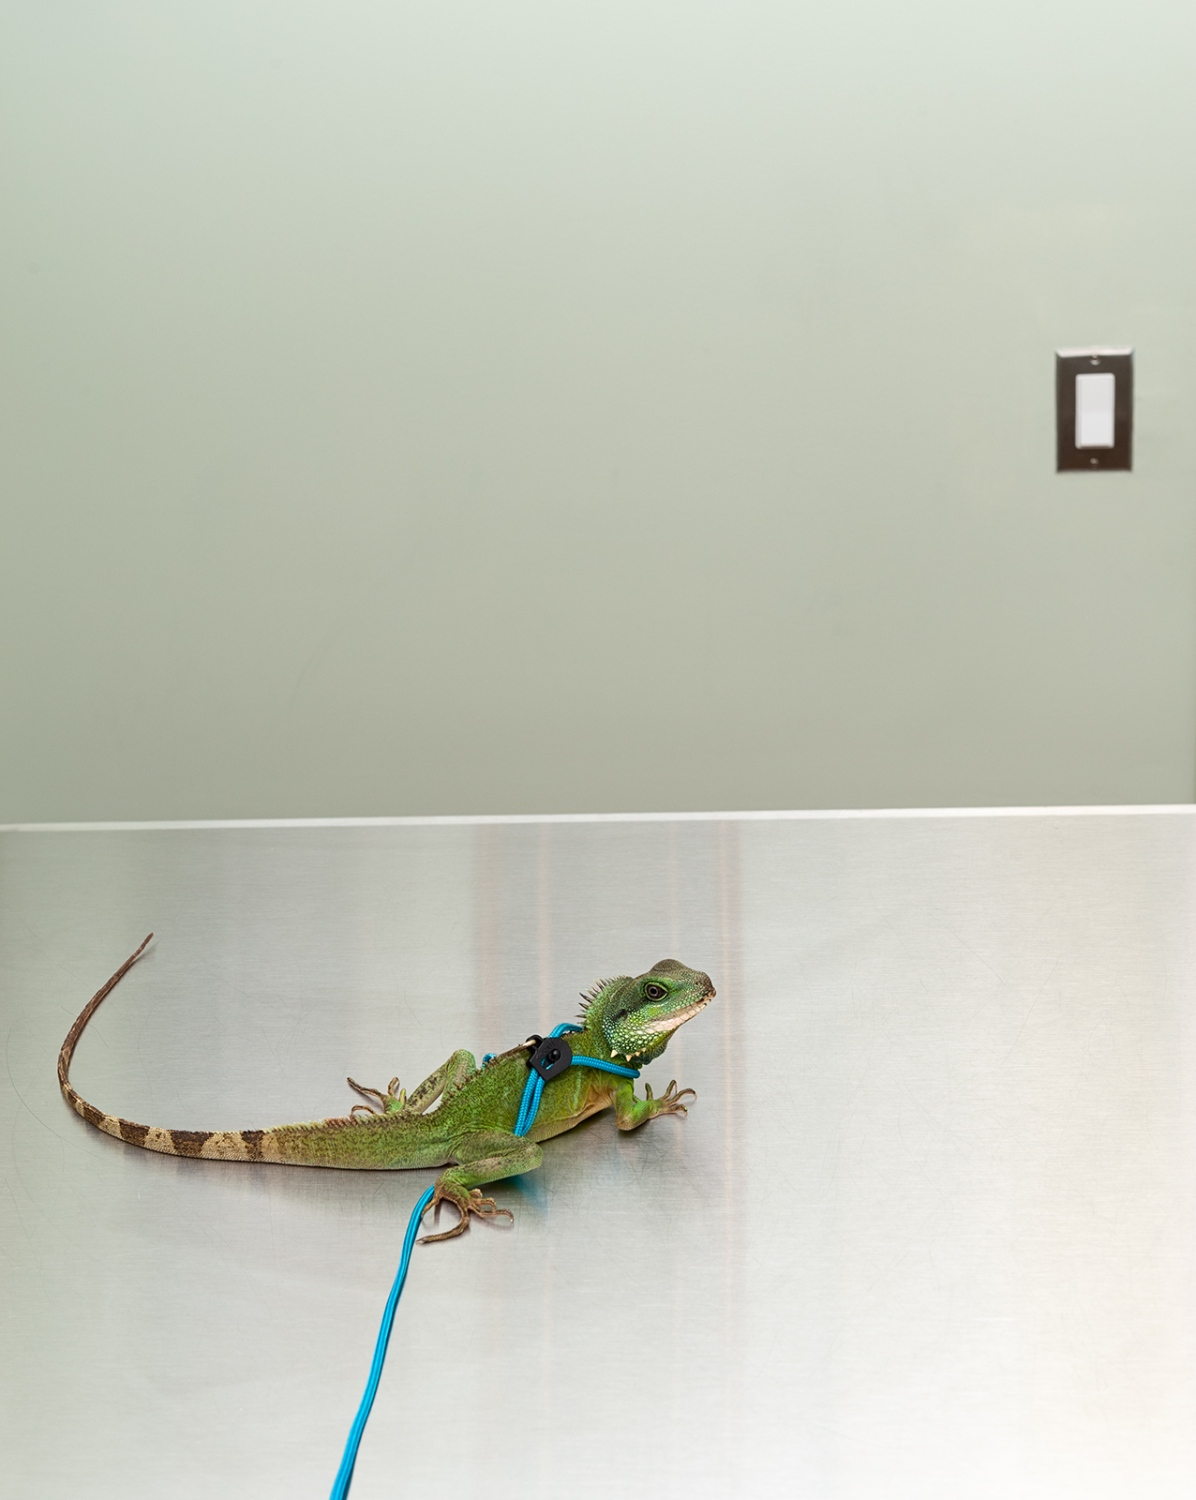 A Chinese Water Dragon on a leash waits for his exam.